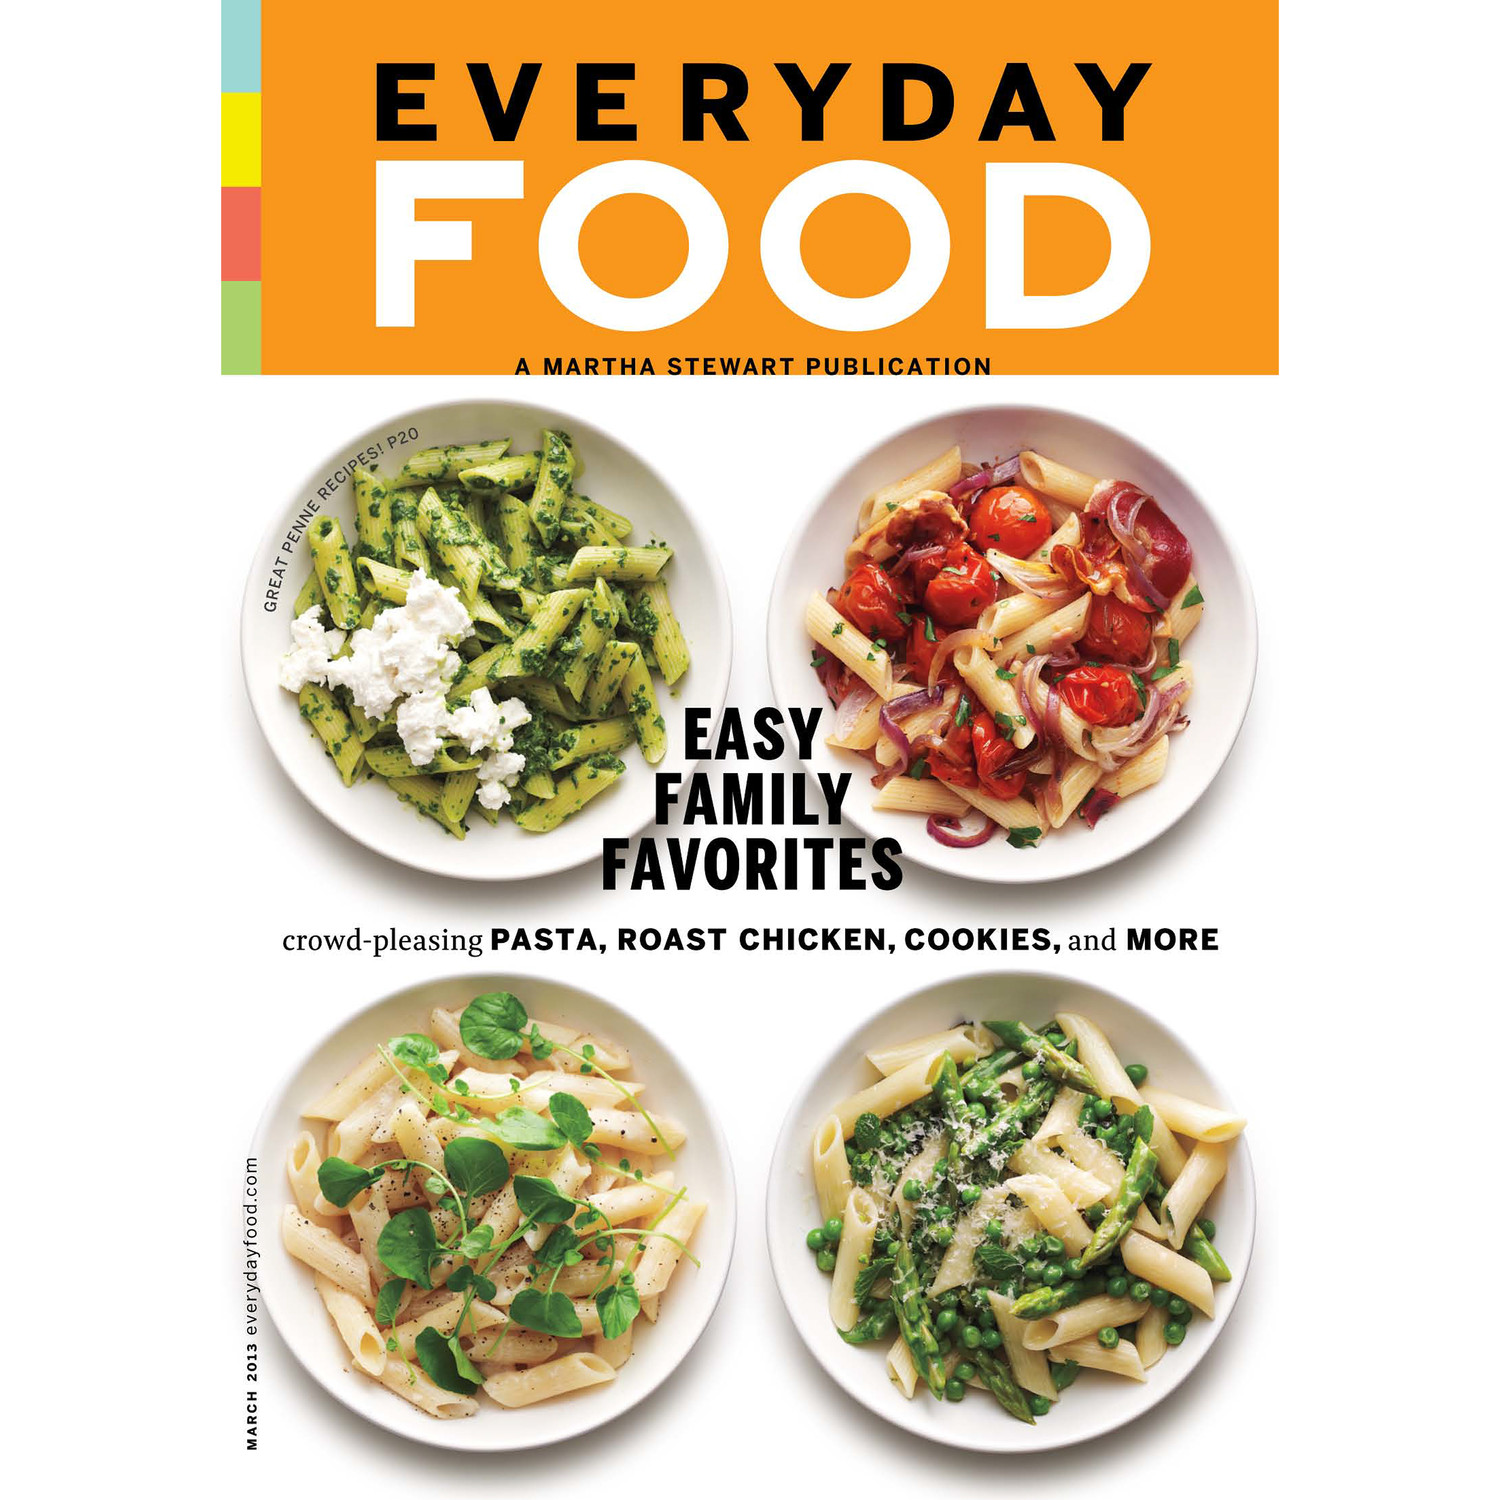 Everyday food may 2013 martha stewart forumfinder Choice Image